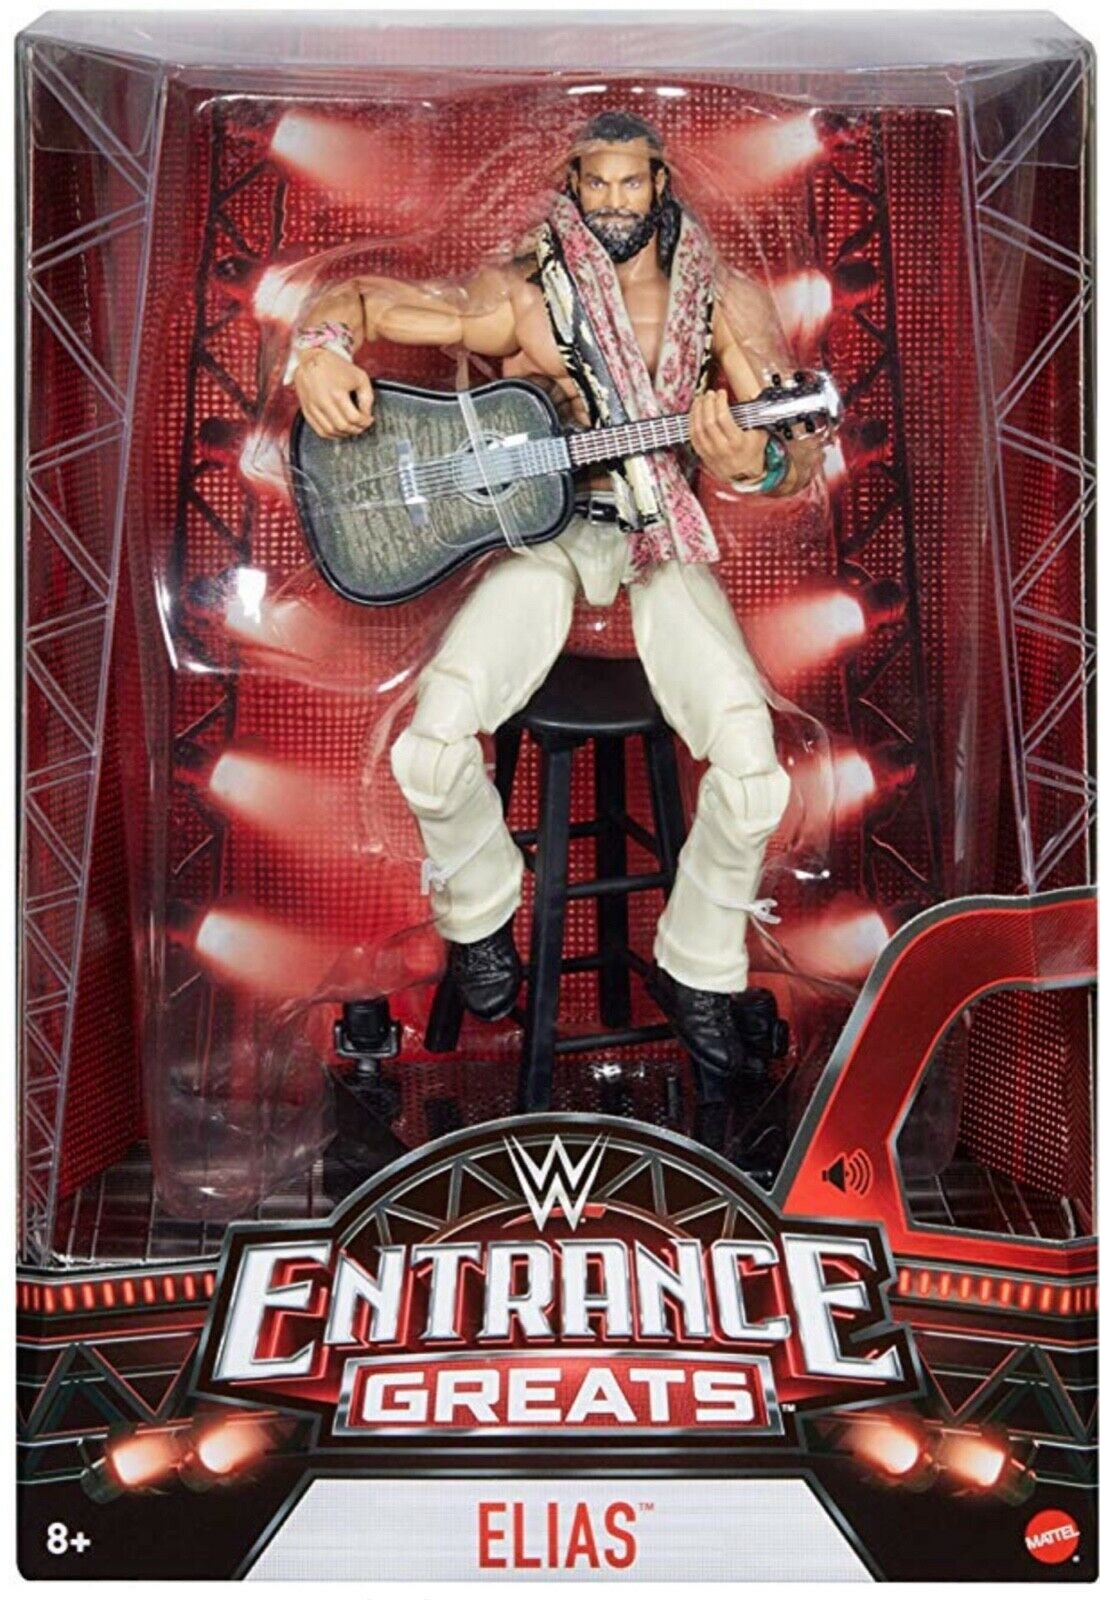 Wwe mattel action figure wrestling Entrance Greats Elias elite guitar